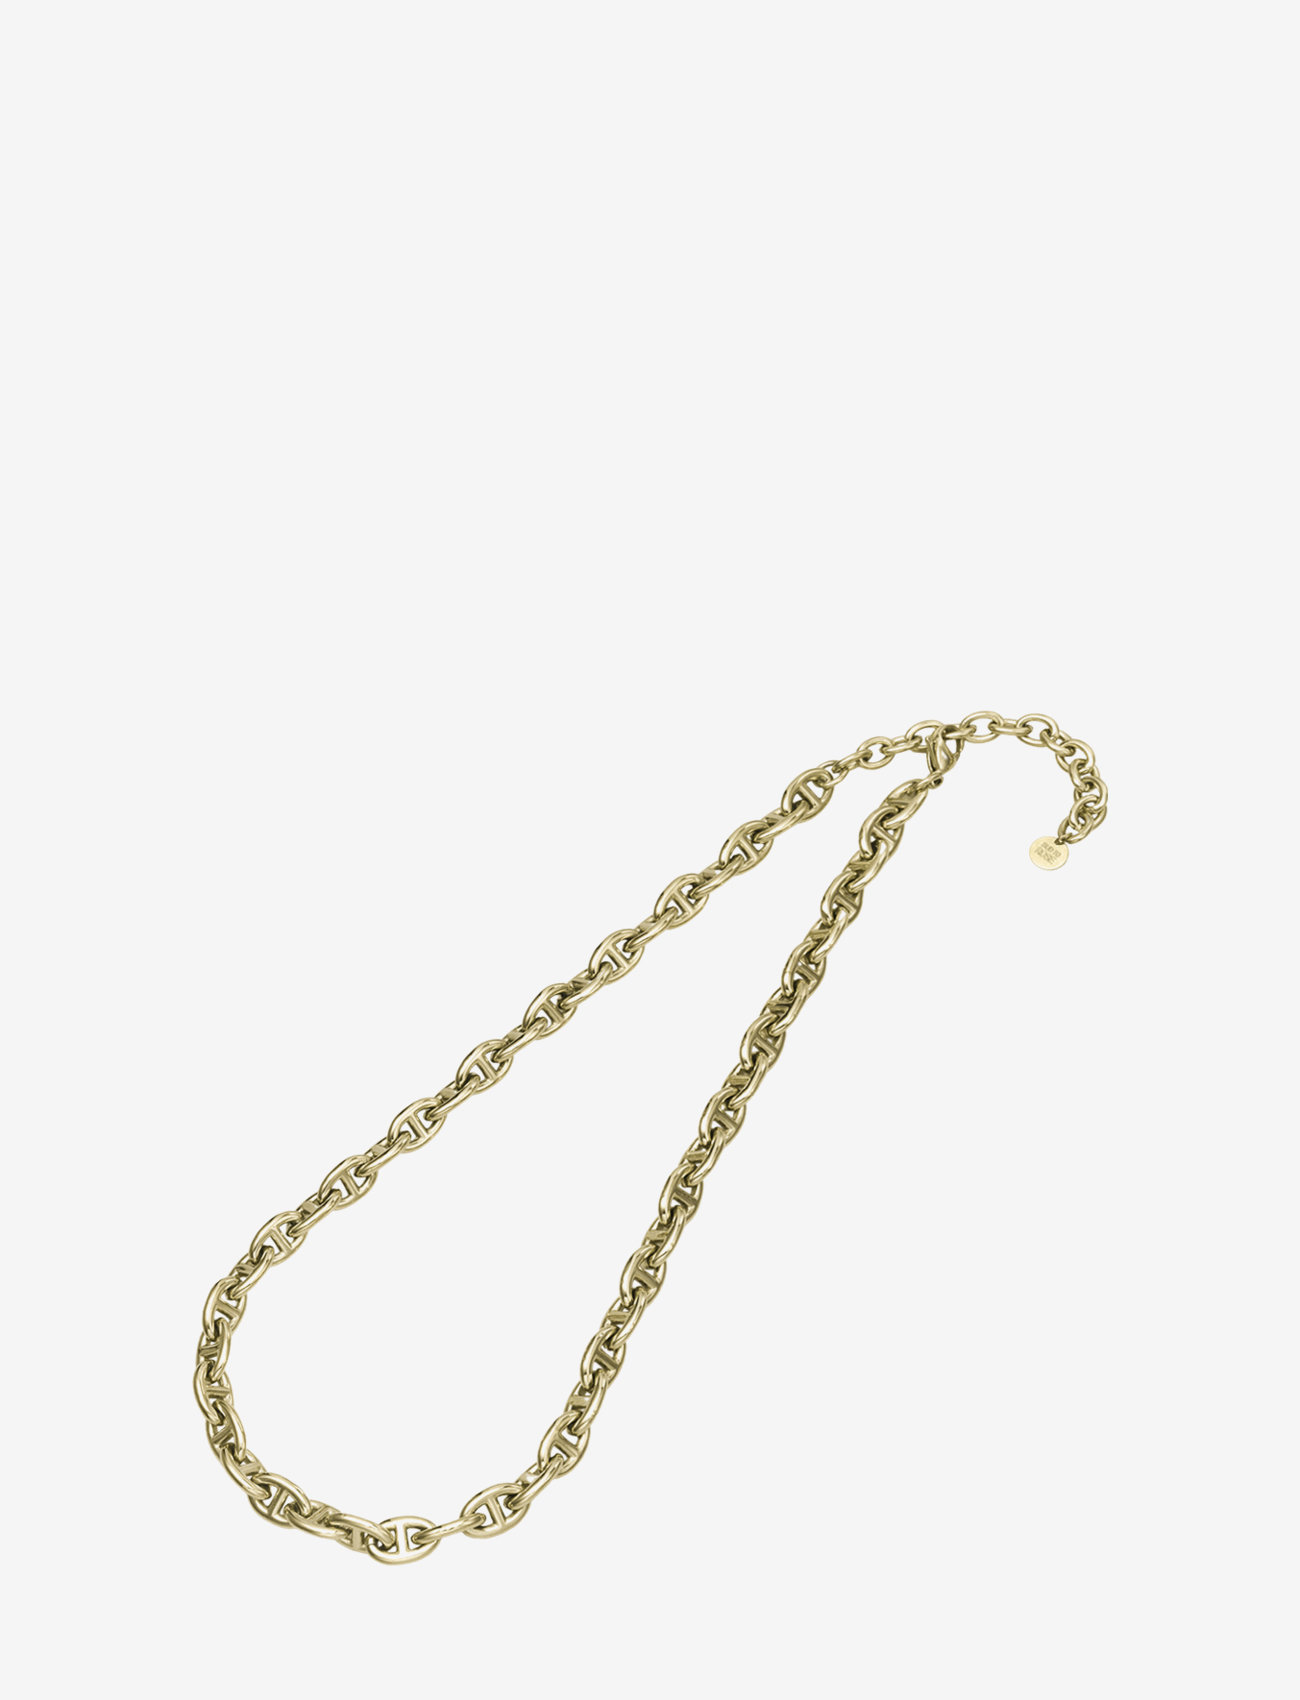 Bud to rose - Nikki Short Necklace Steel - kettingen  - gold - 1